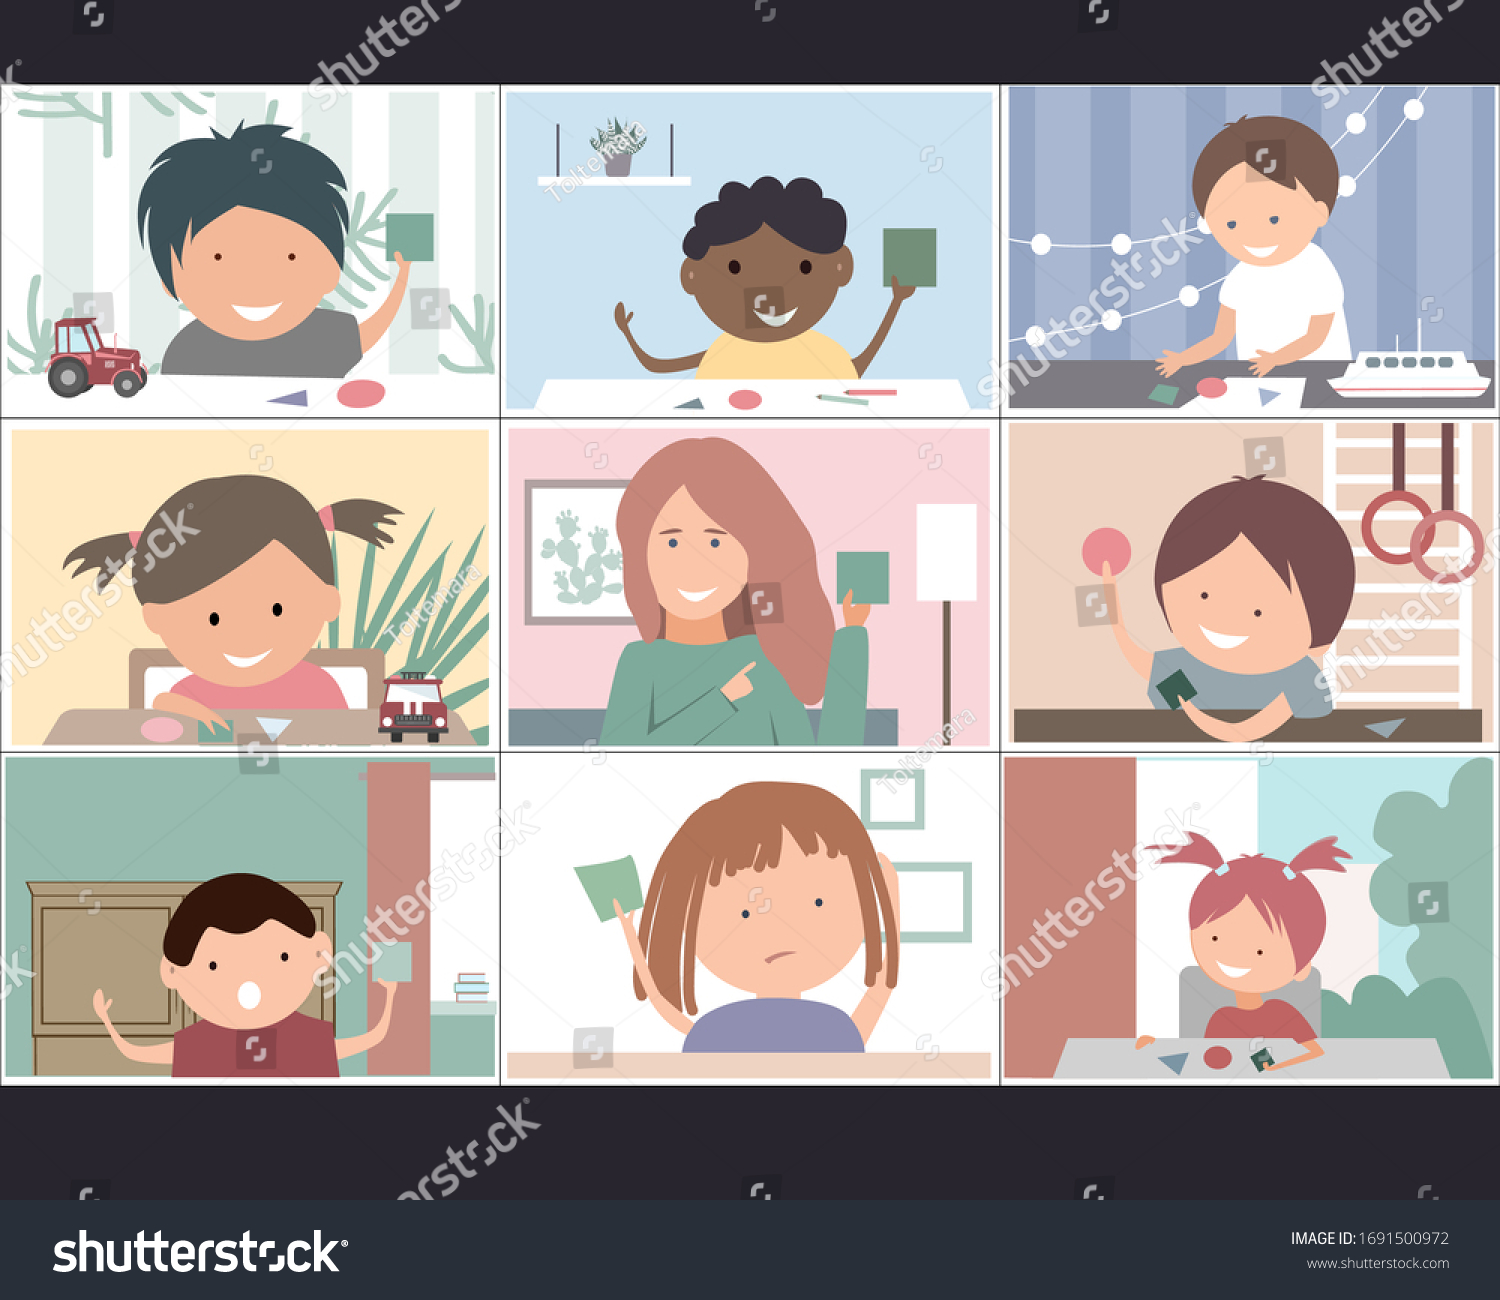 Online Education Concept Preschool Kindergartens Toddler Stock Vector Royalty Free 1691500972